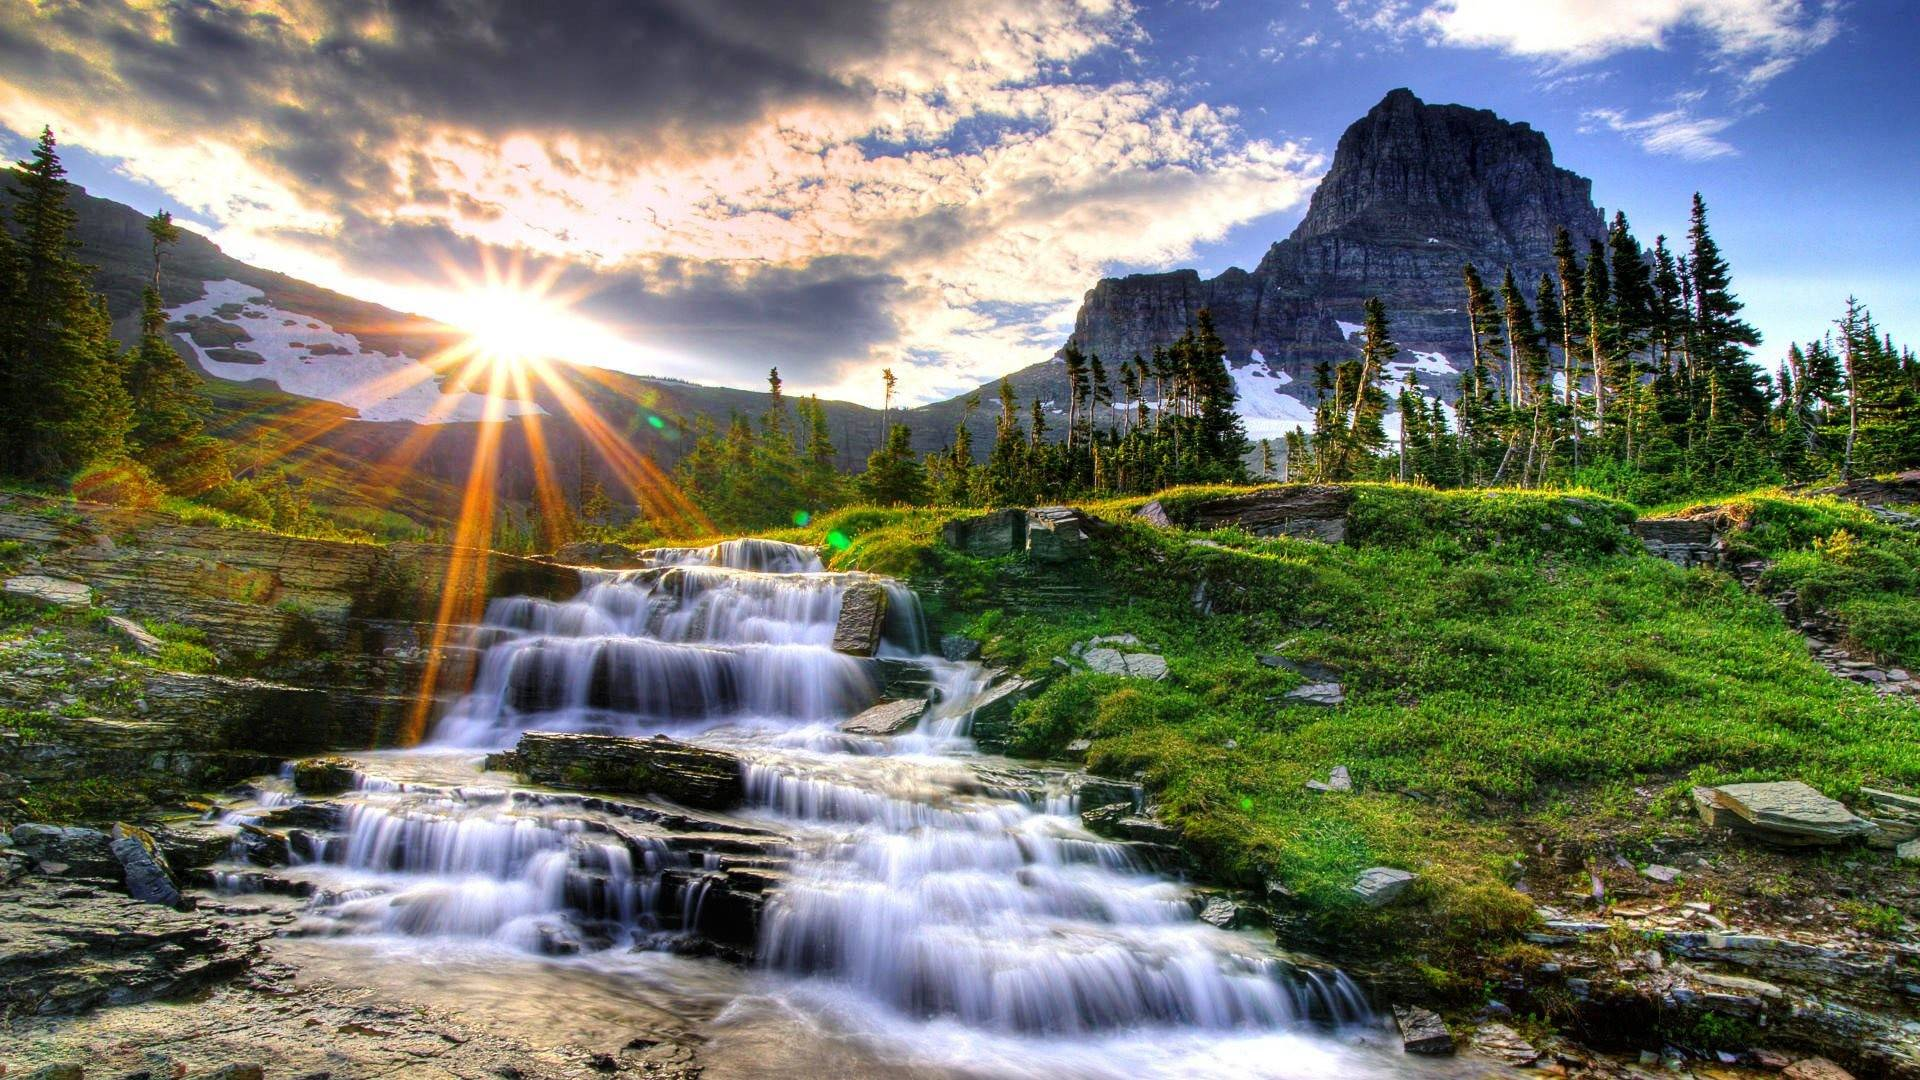 Water fall image nature wallpaper